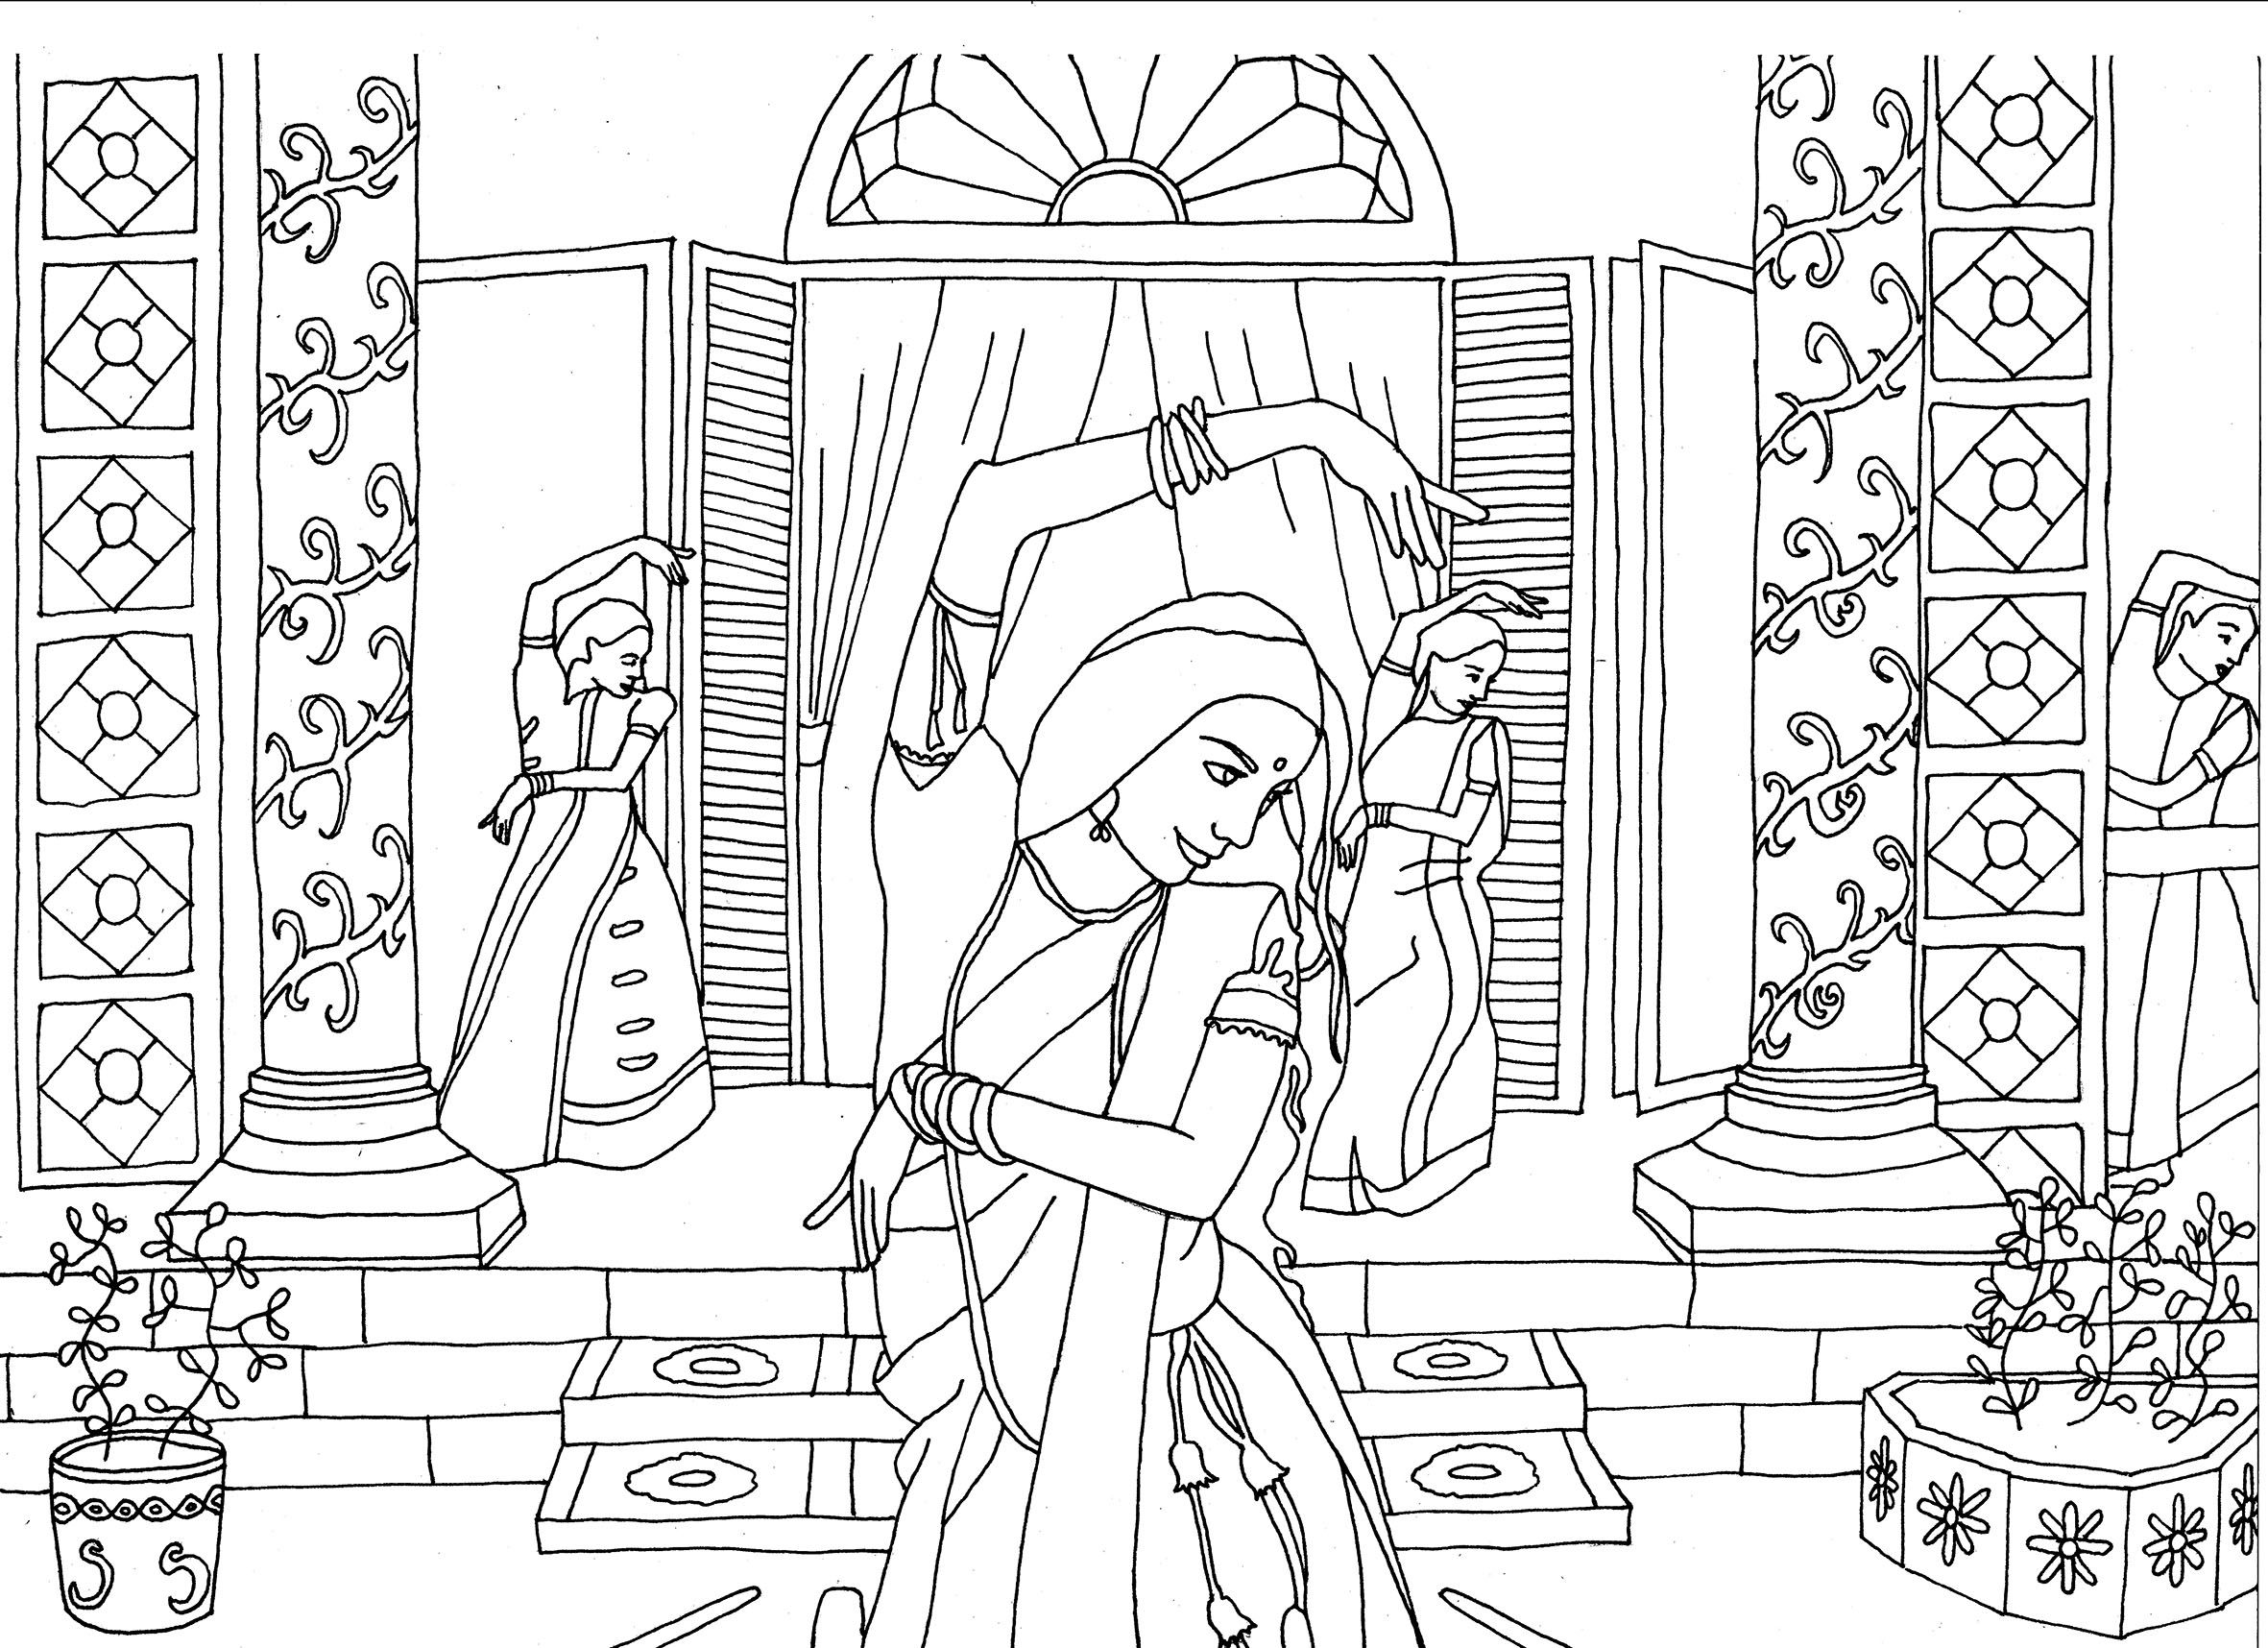 Indian Dancers India Bollywood Coloring Pages For Adults